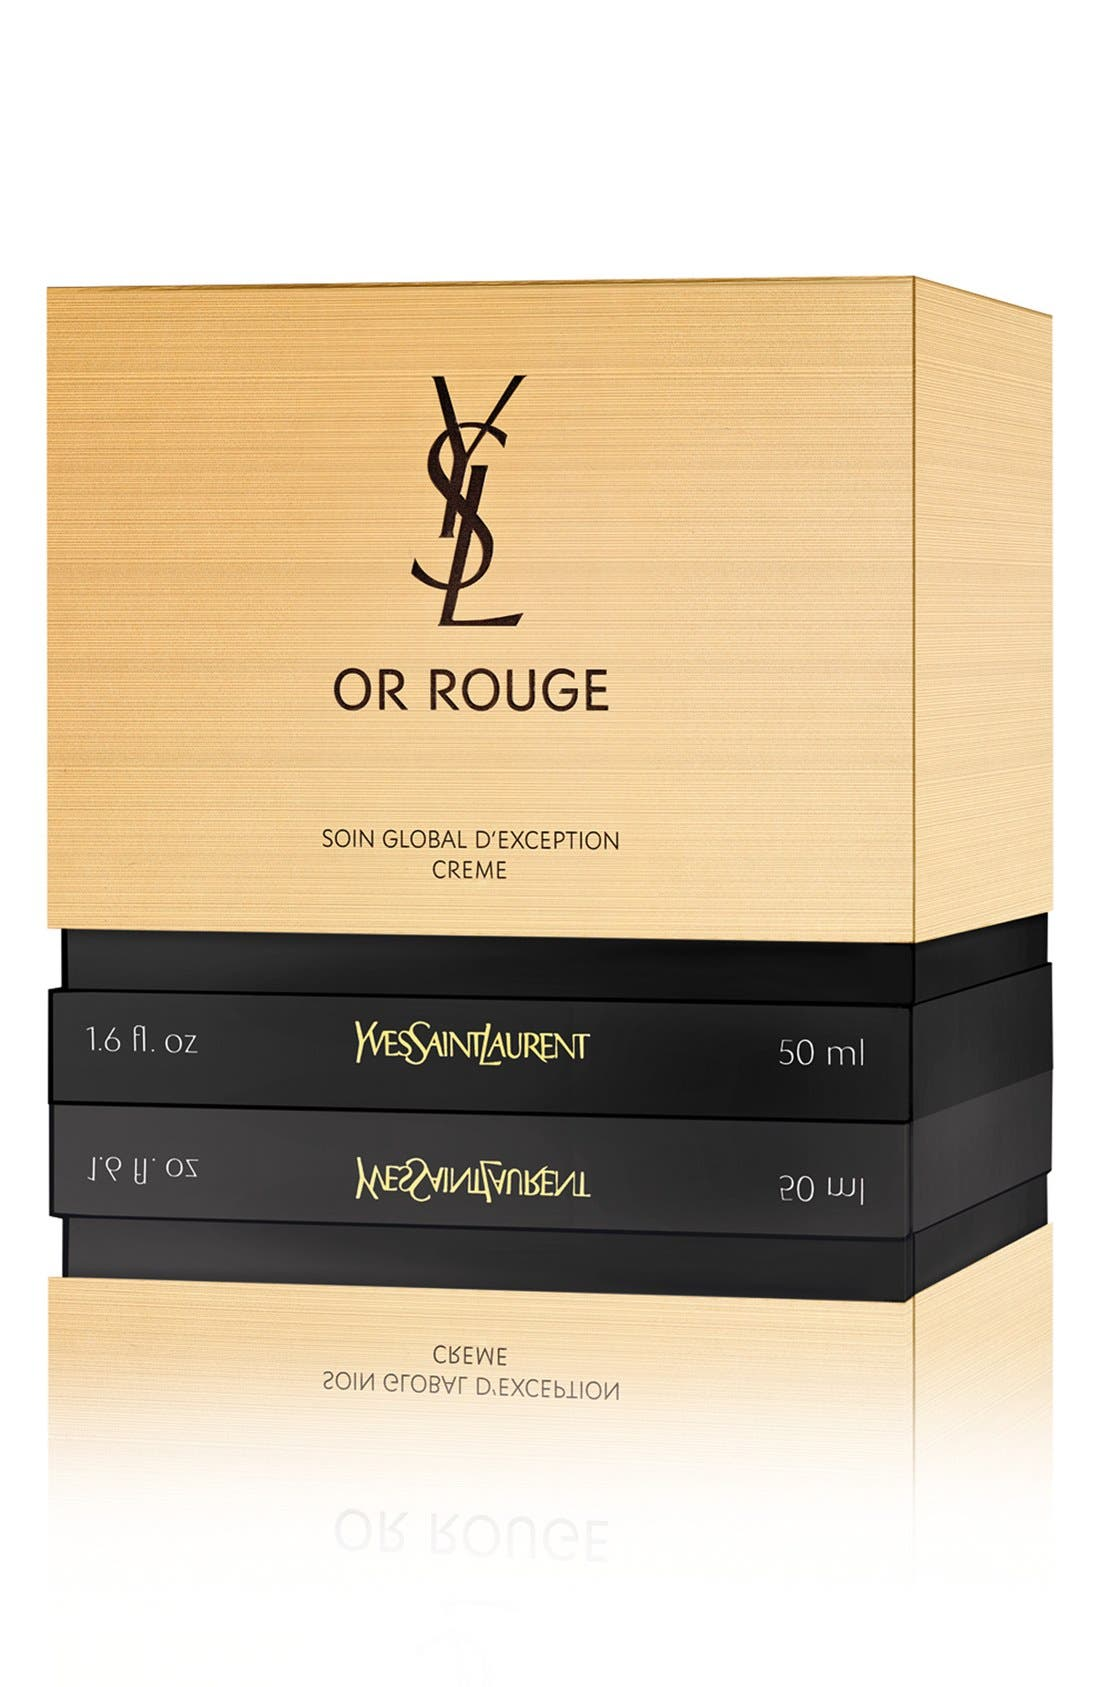 YVES SAINT LAURENT,                             Or Rouge Crème,                             Alternate thumbnail 2, color,                             000